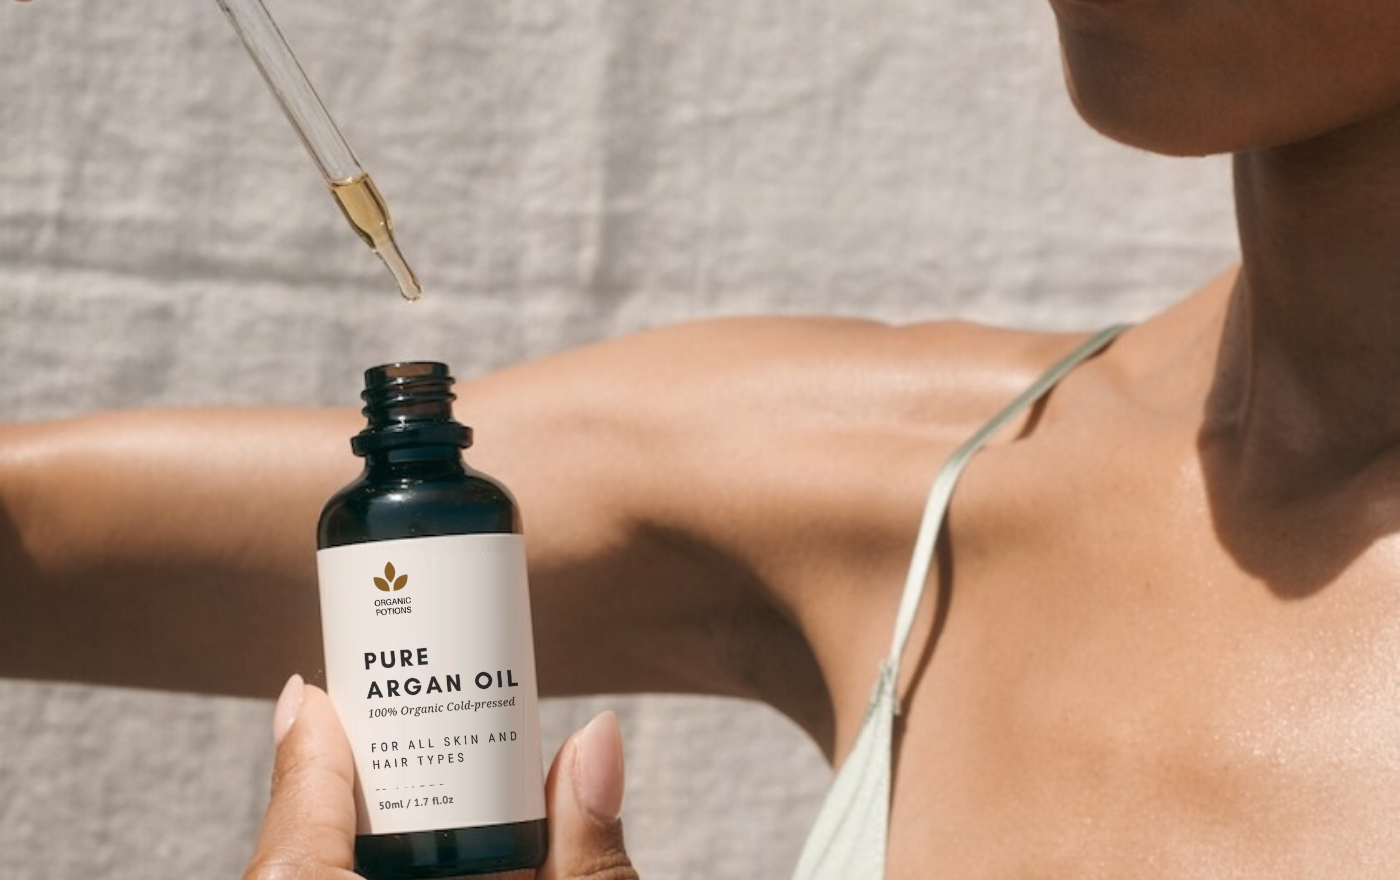 14 reasons why everyone needs a bottle of Argan oil